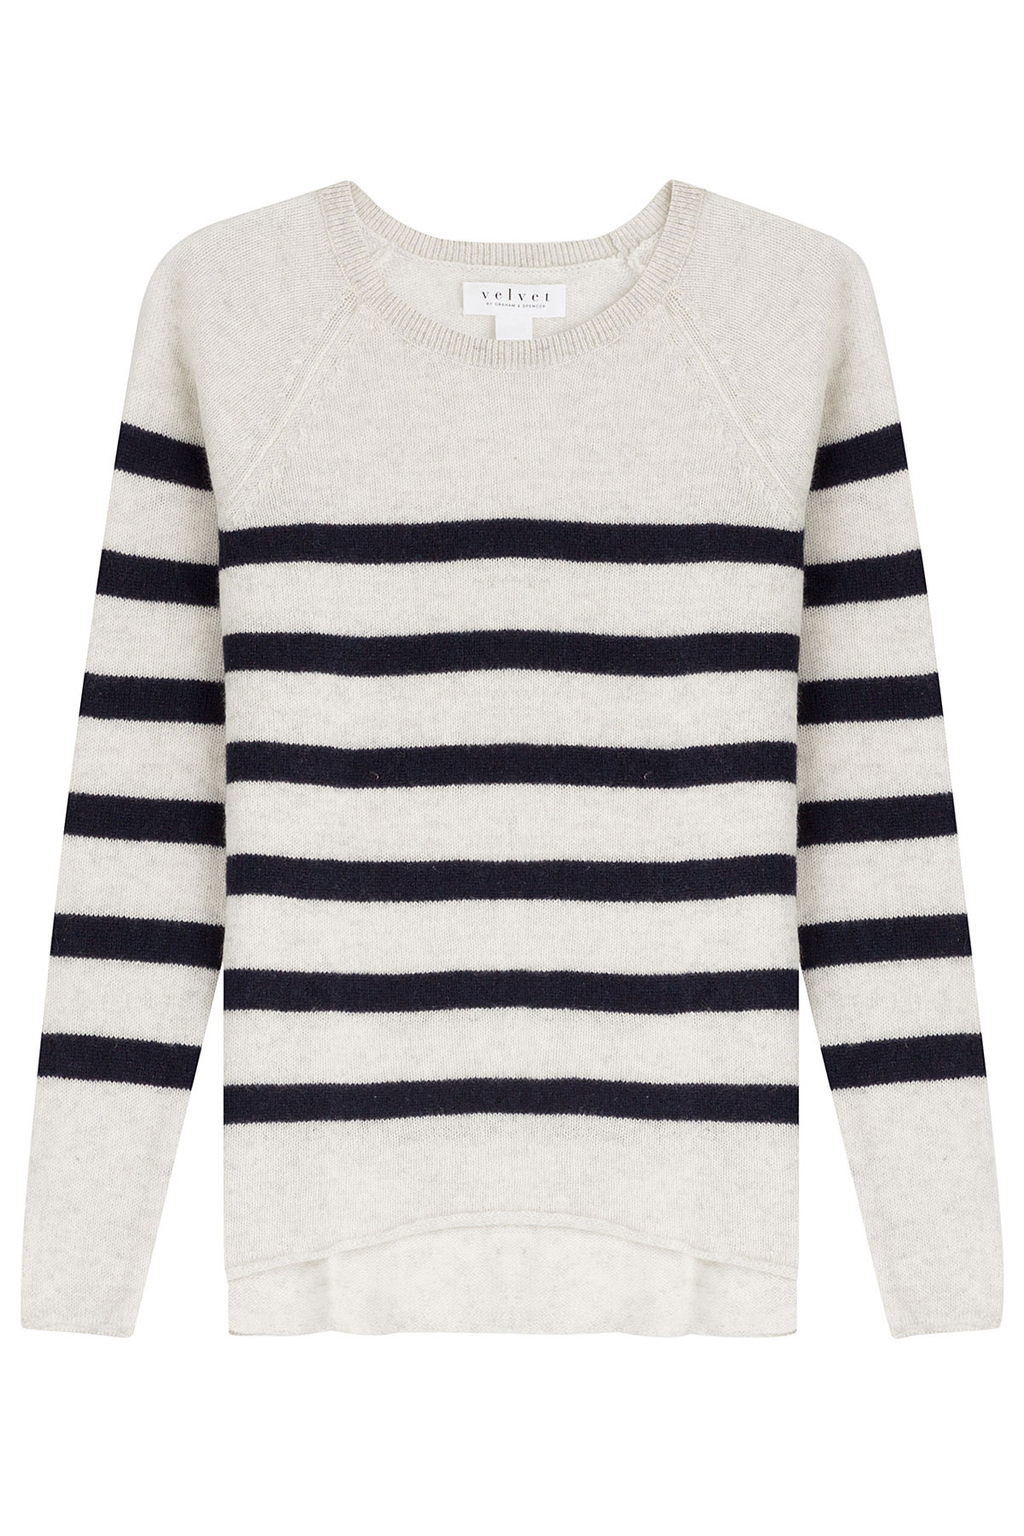 Striped Cashmere Pullover Stripes - neckline: round neck; pattern: horizontal stripes; style: standard; predominant colour: ivory/cream; secondary colour: navy; occasions: casual, creative work; length: standard; fit: standard fit; fibres: cashmere - 100%; sleeve length: long sleeve; sleeve style: standard; texture group: knits/crochet; pattern type: knitted - fine stitch; pattern size: standard; season: s/s 2016